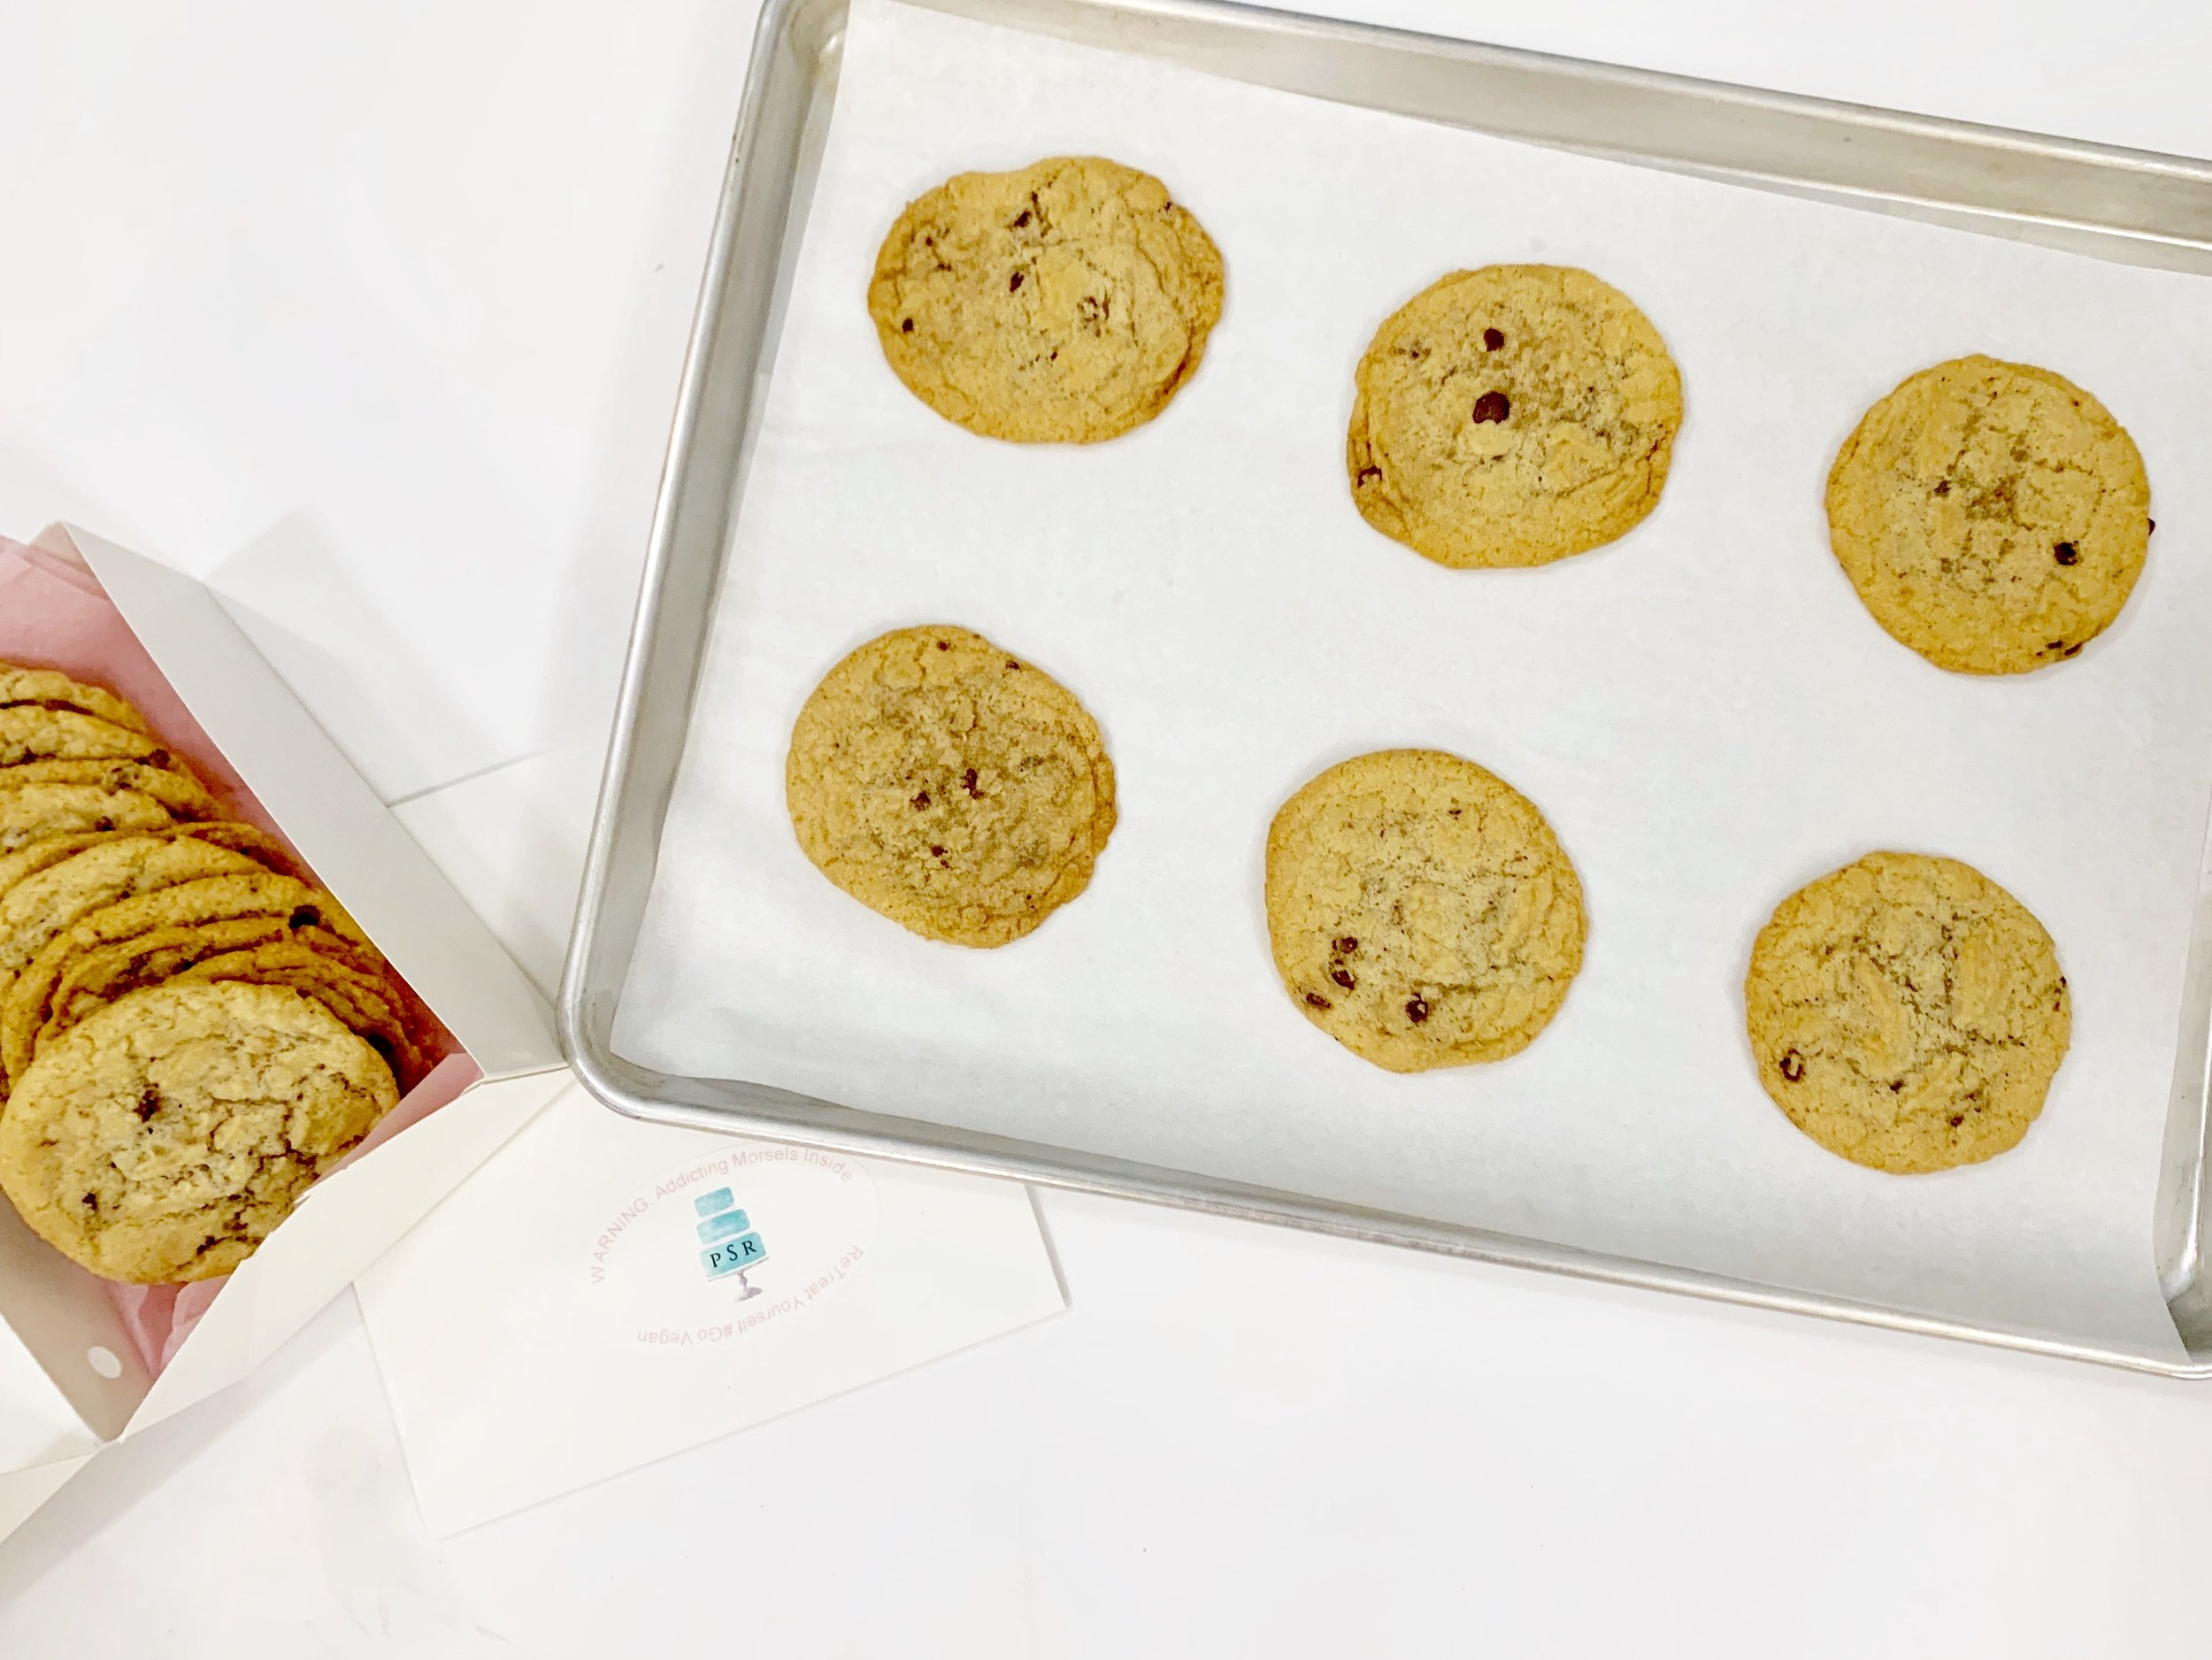 Chocolate Chip Cookies (One Dz) $16